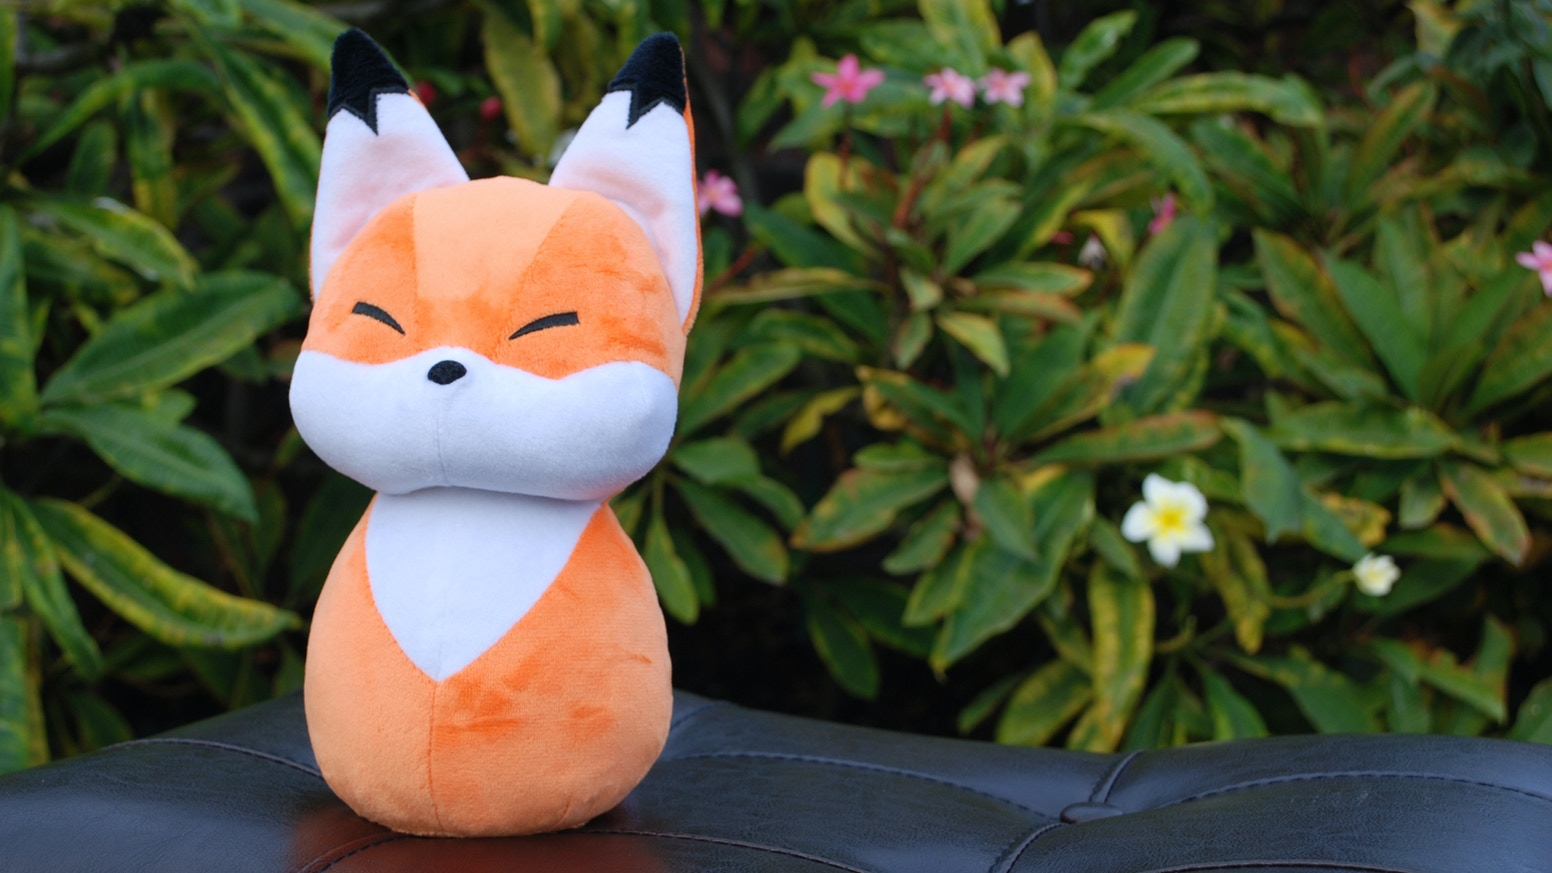 Natural Pop presents a good fox buddy who is soft and sweet!